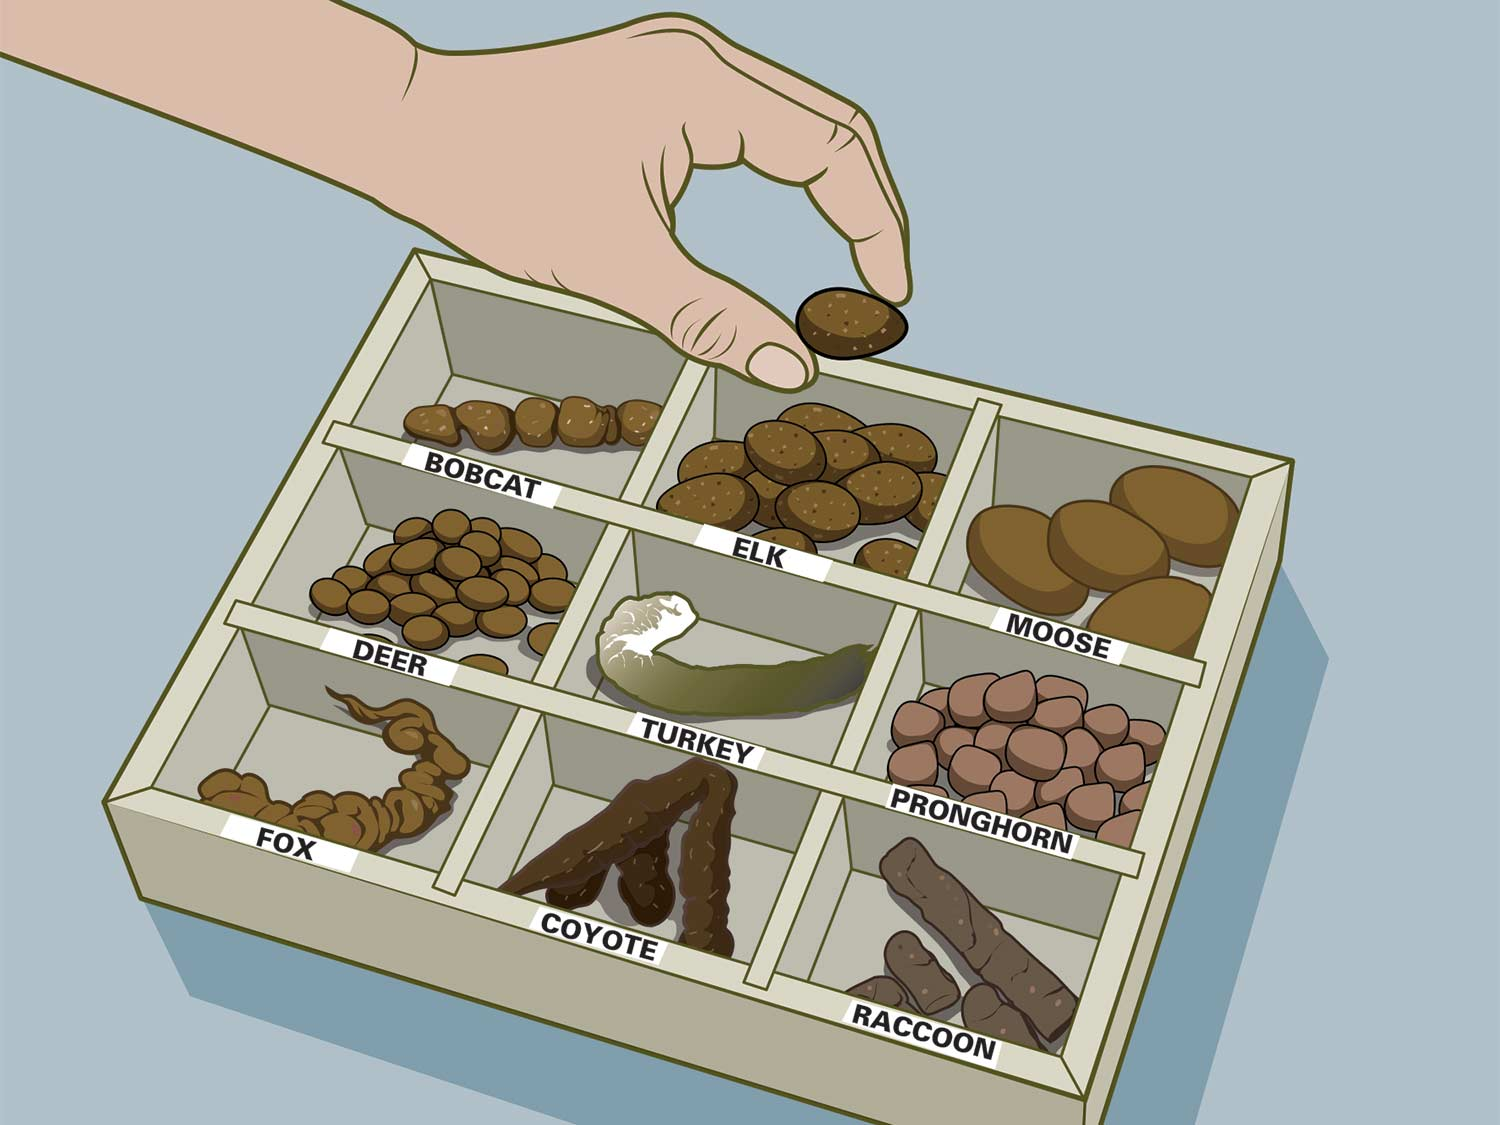 Illustration of a box of wild animal poop.